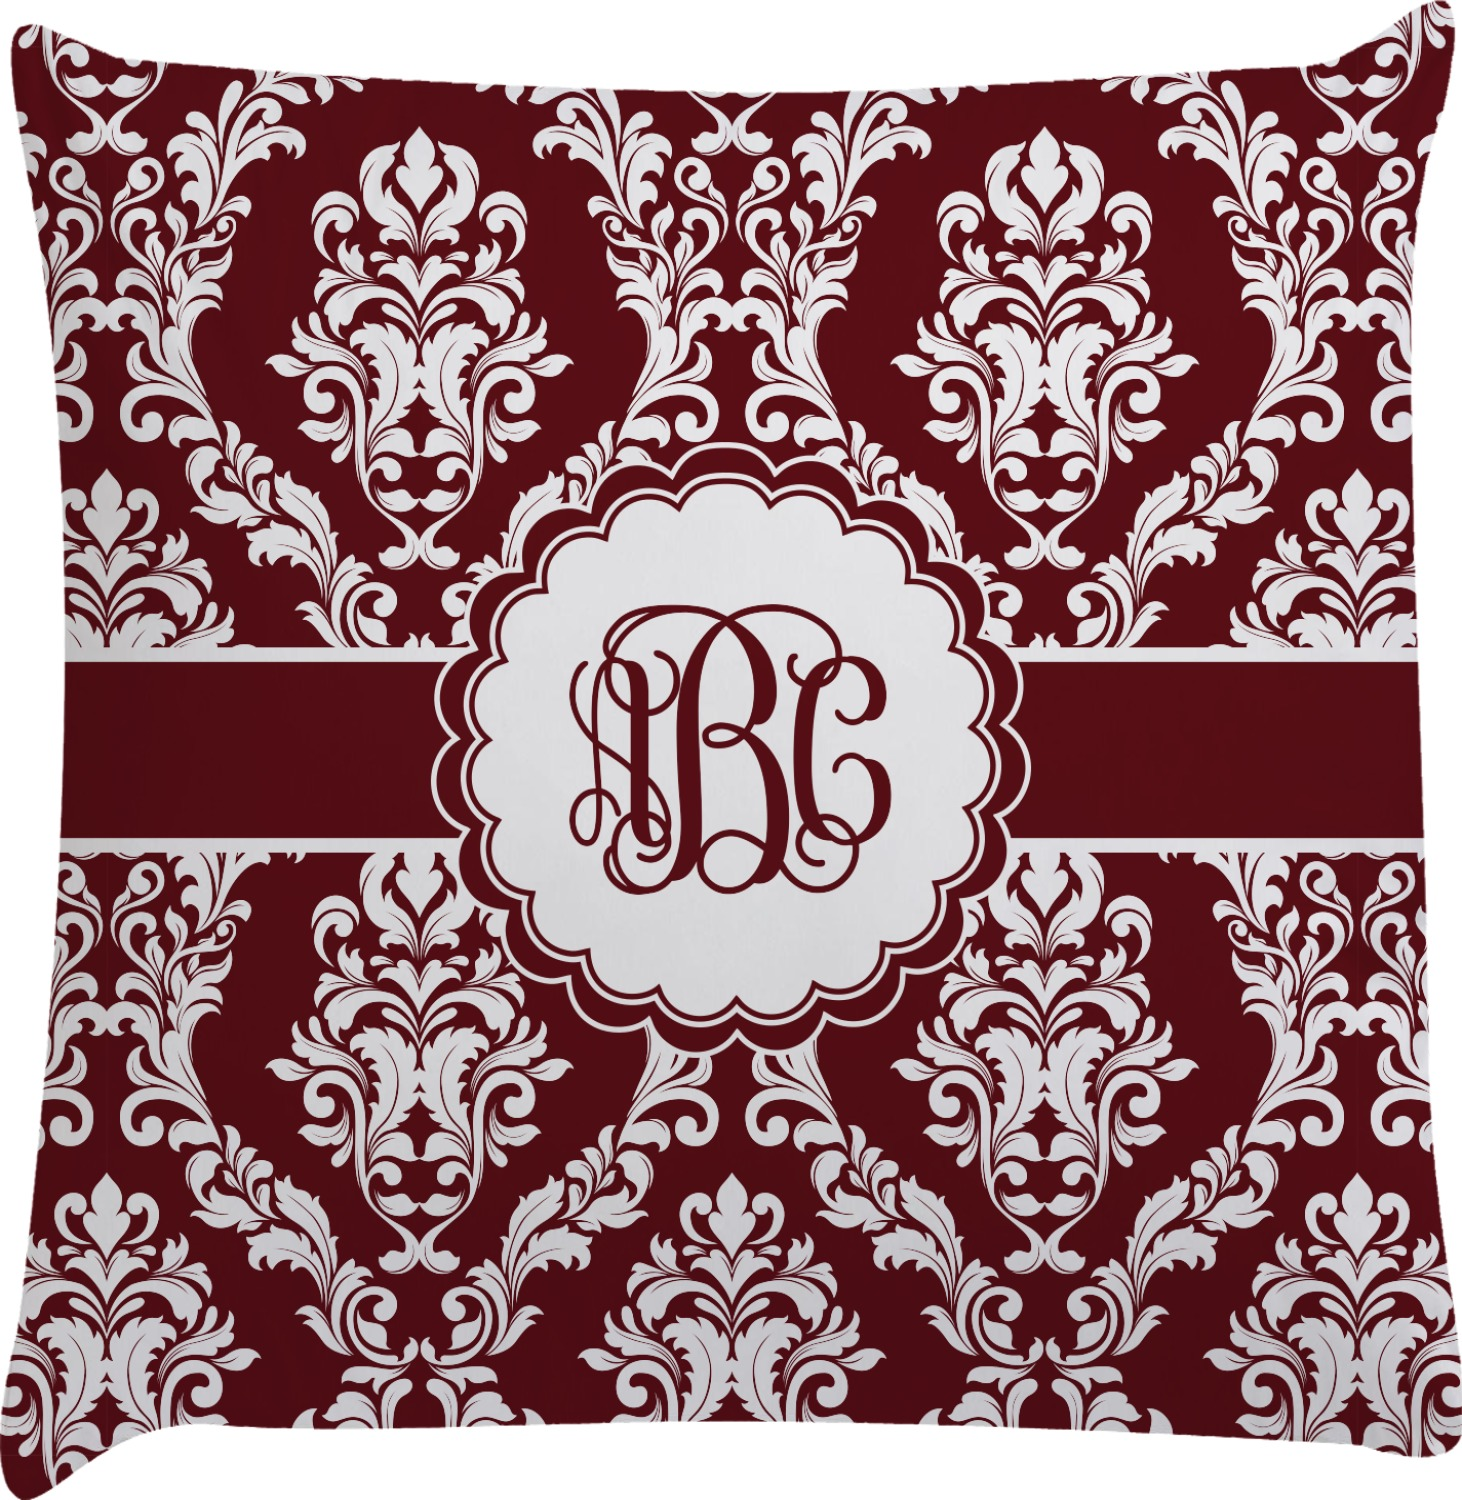 Decorative Pillow Cases White : Maroon & White Decorative Pillow Case (Personalized) - YouCustomizeIt